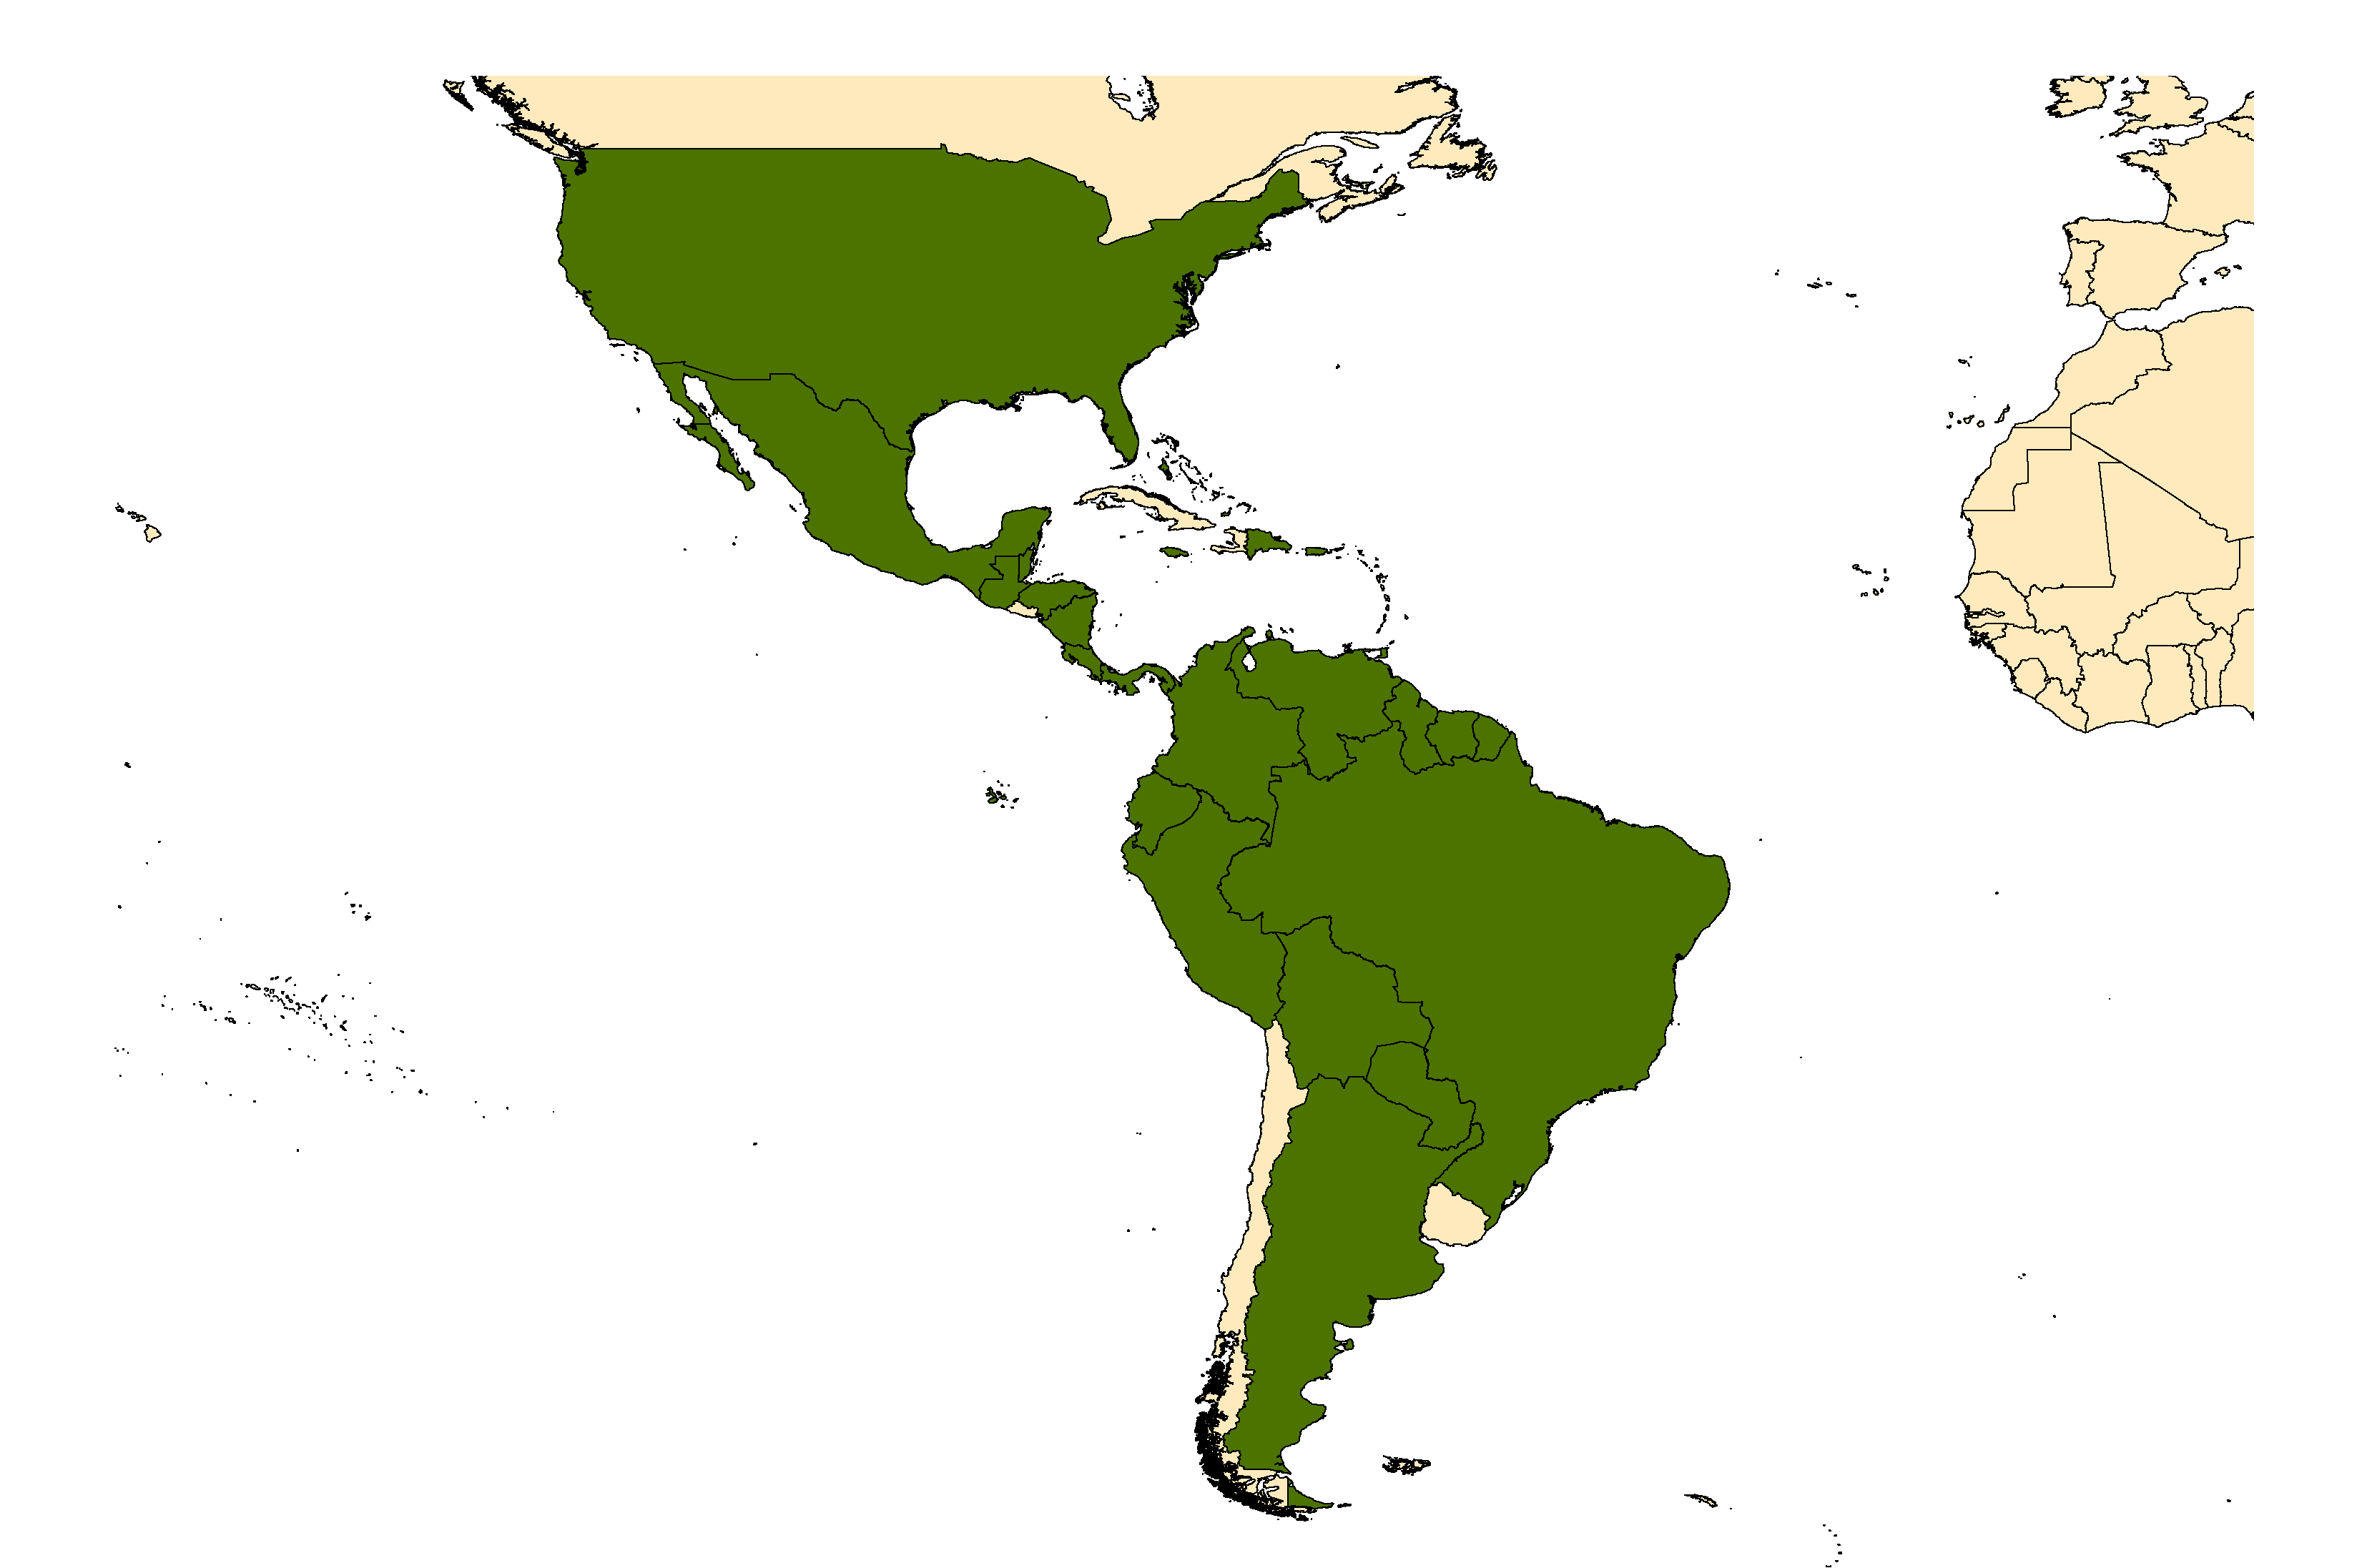 Distribution map for <em>Culex taeniopus</em> Dyar & Knab, 1907